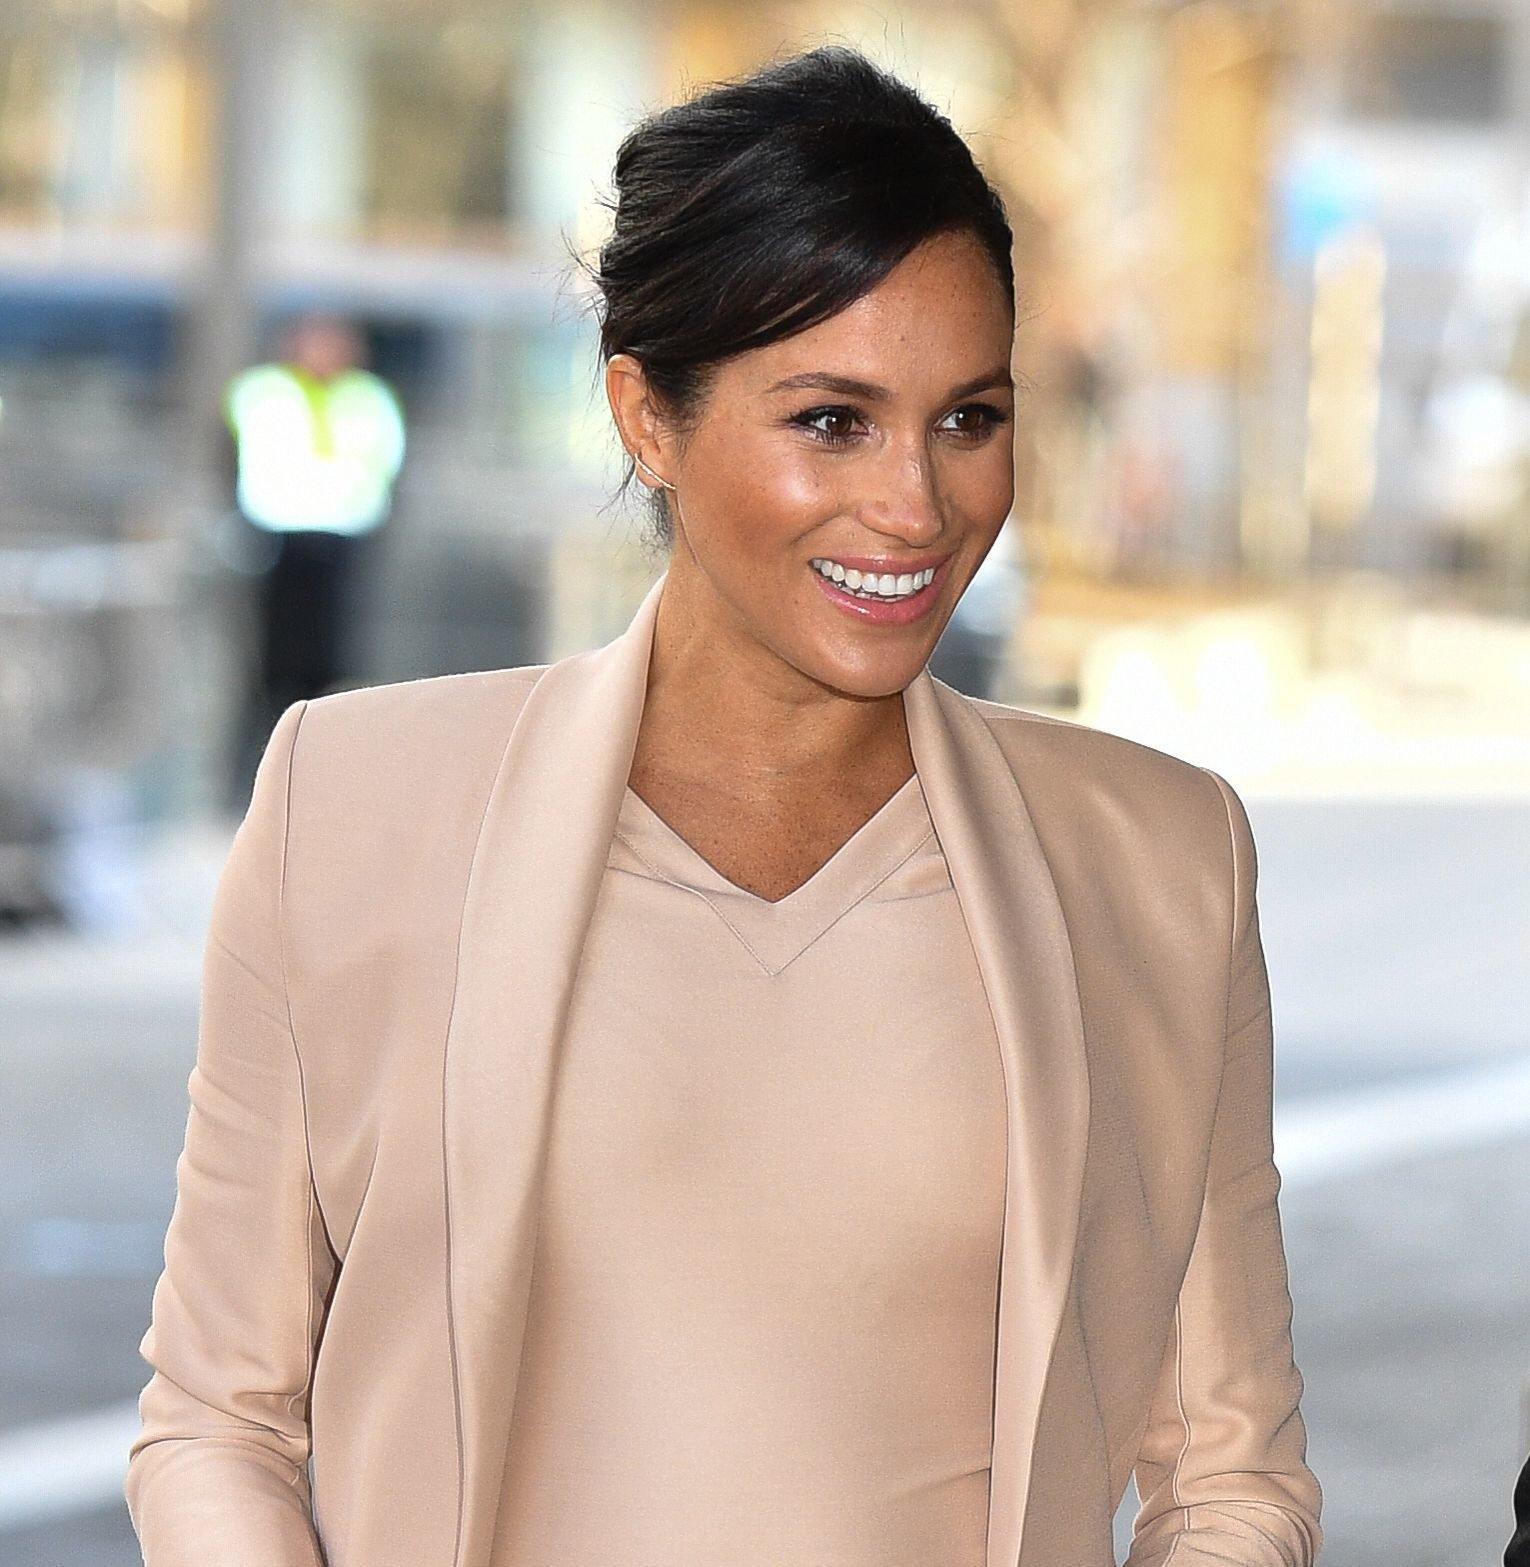 This Is Why Meghan Markle Is Having A Baby Shower—but Kate